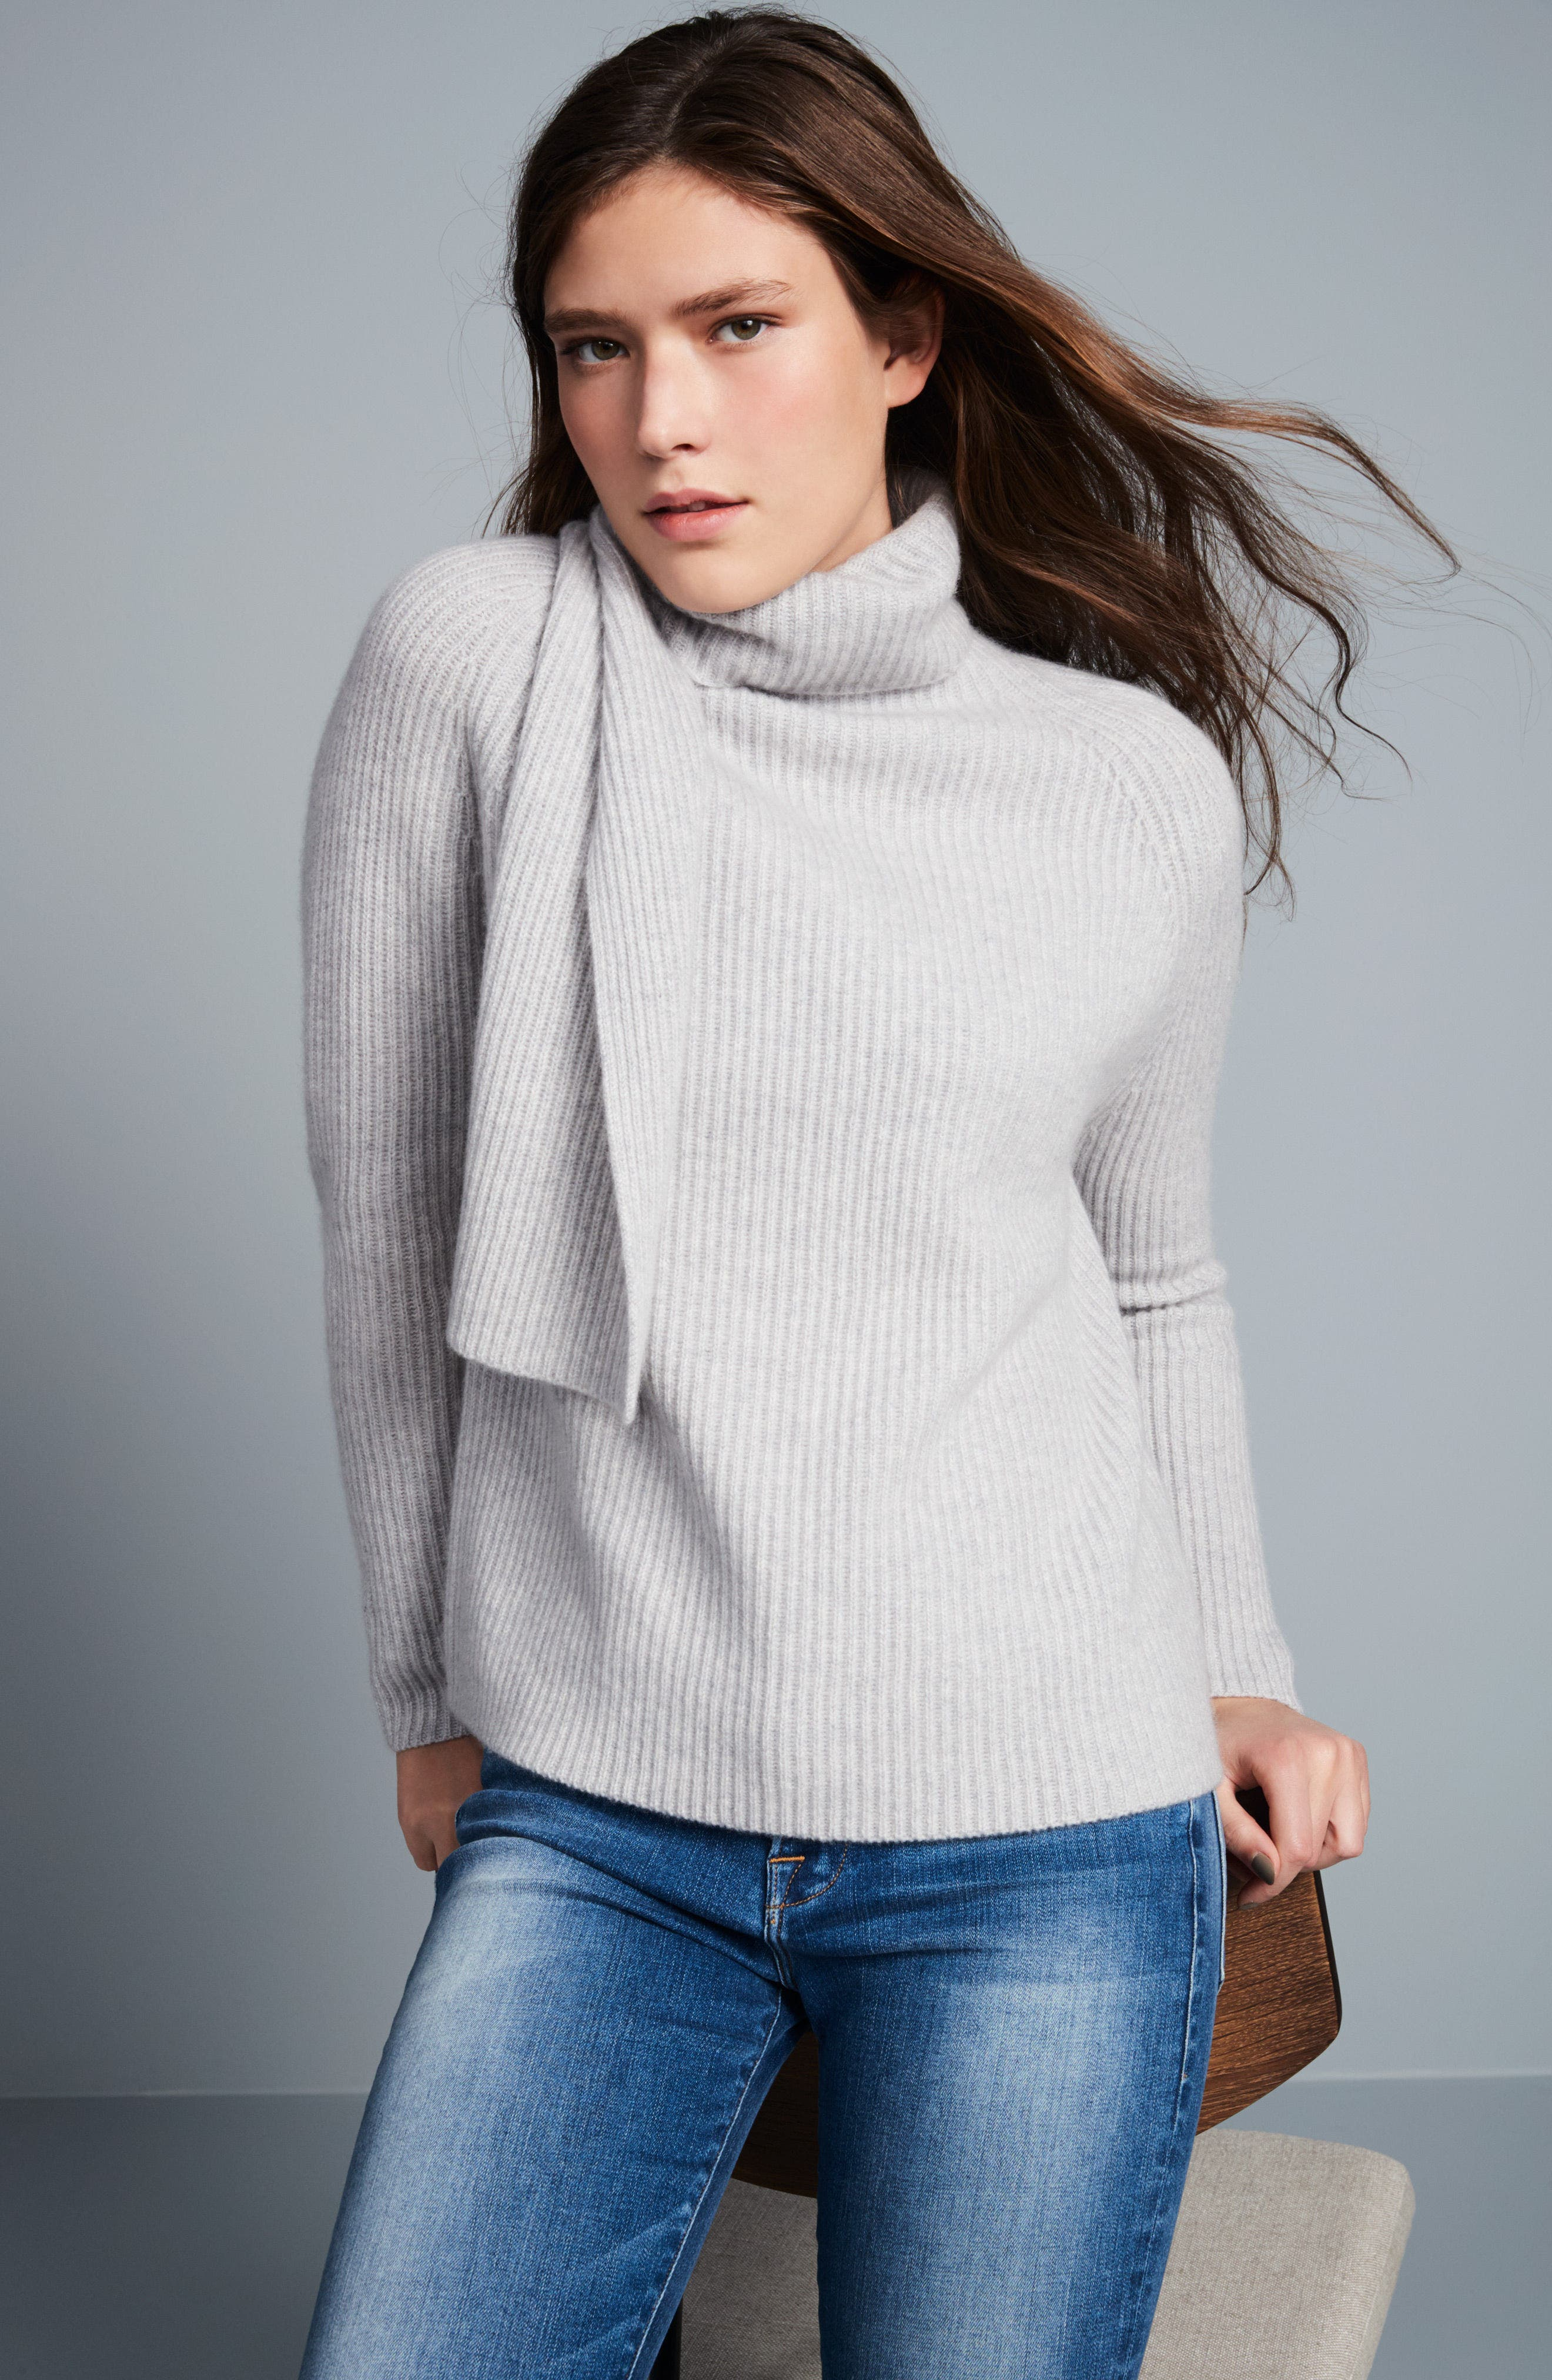 Scarf Neck Cashmere Sweater,                             Alternate thumbnail 7, color,                             050